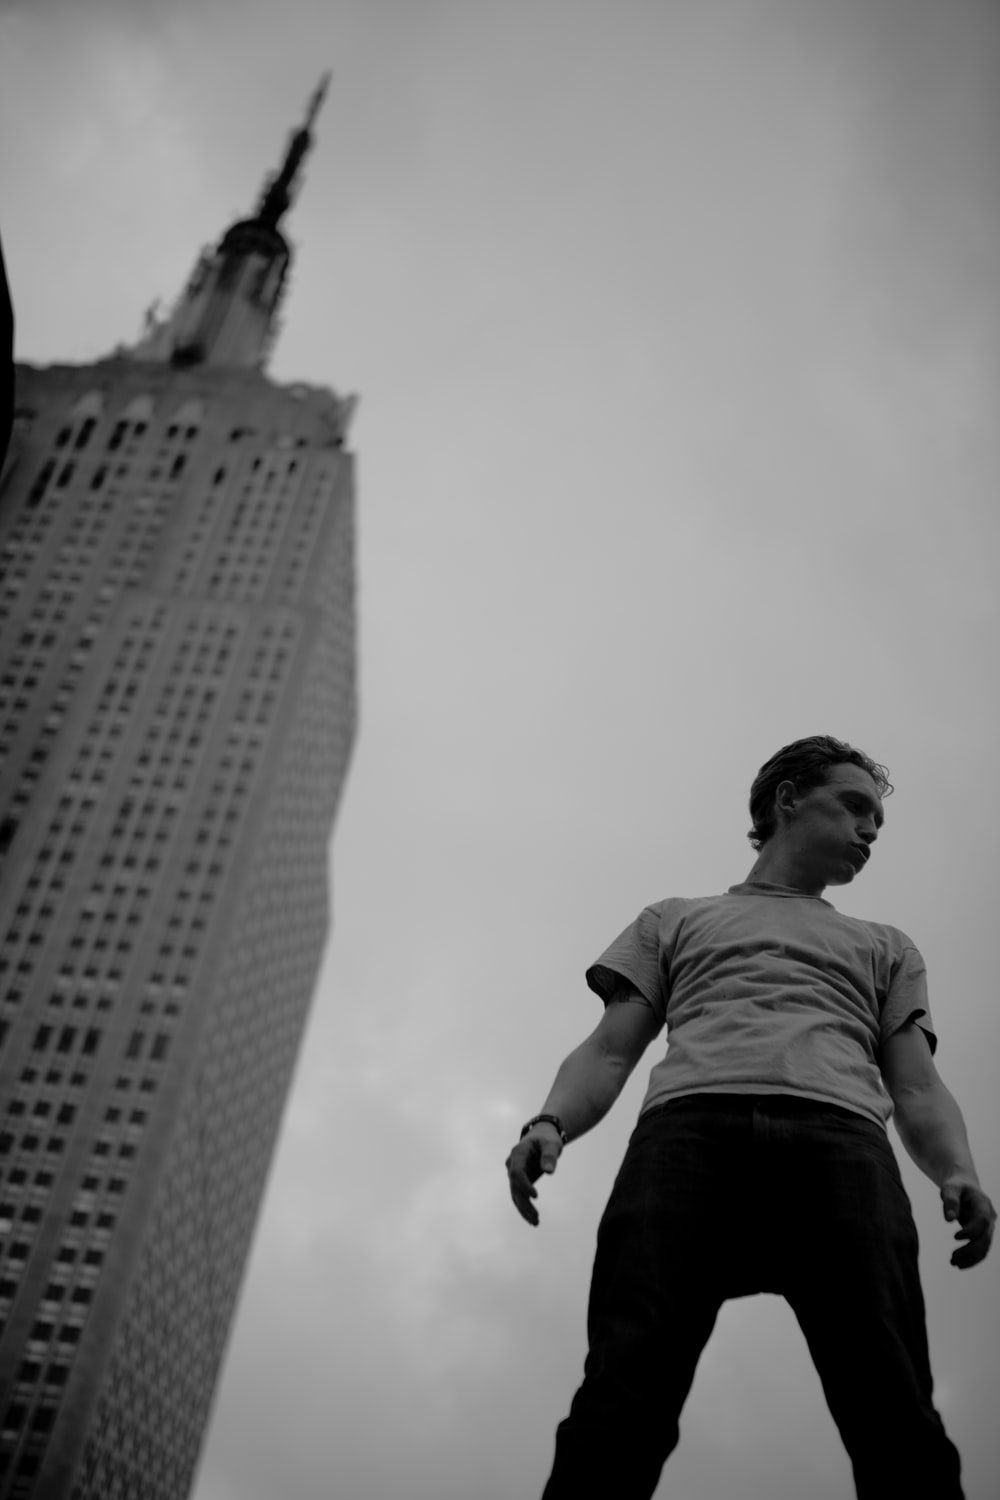 grayscale low-angle photo of man standing near building